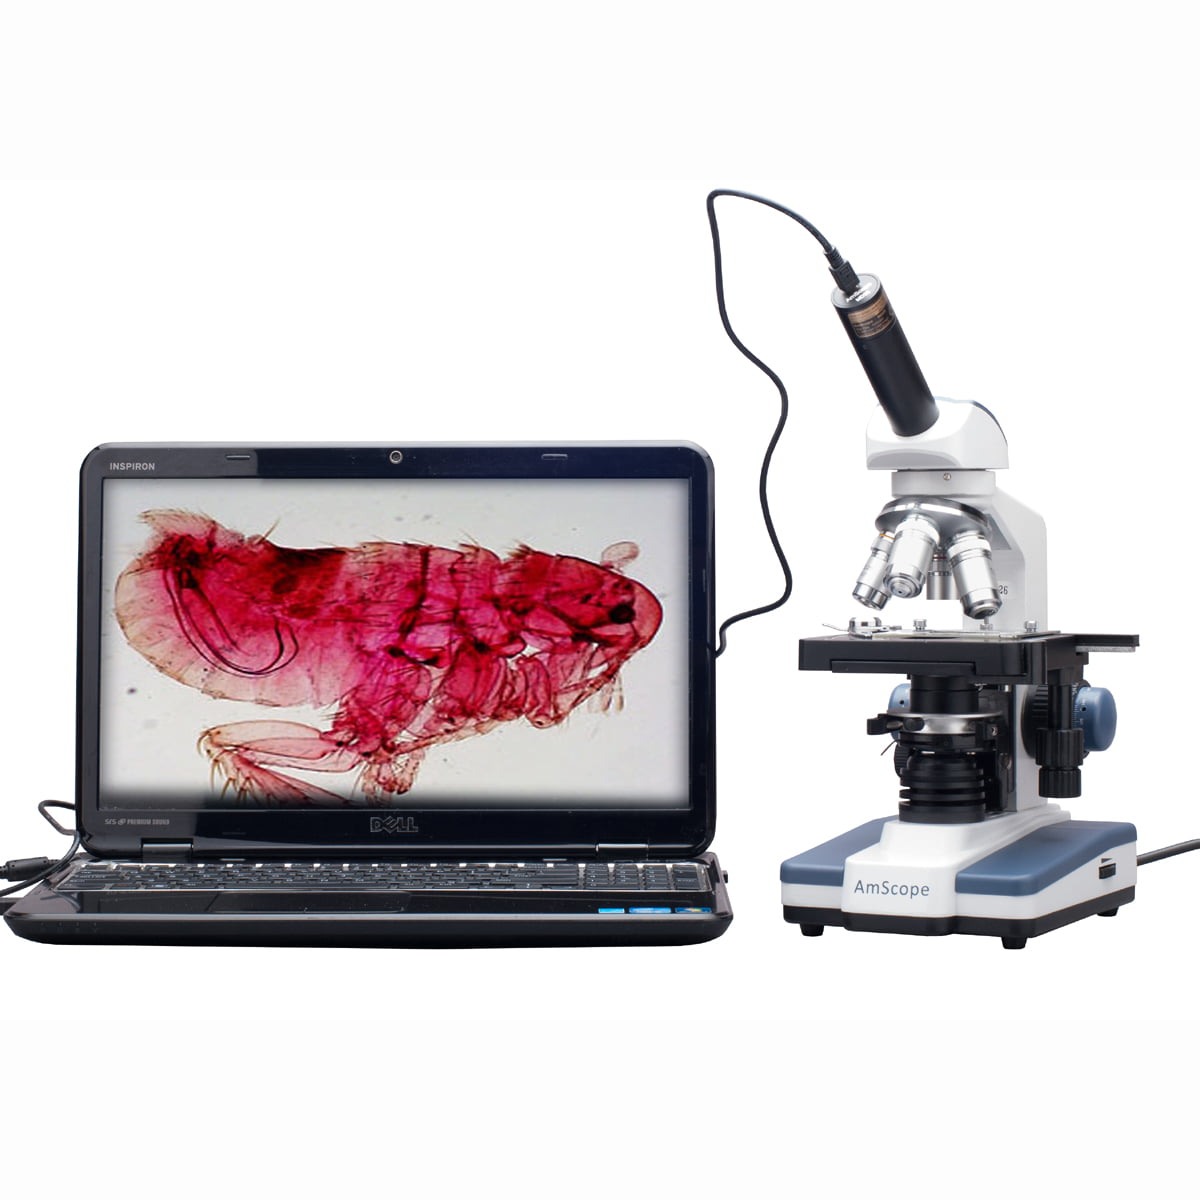 AmScope 40X-2500X LED Digital Monocular Compound Microscope w 3D Stage +1.3MP USB IMager New by AmScope